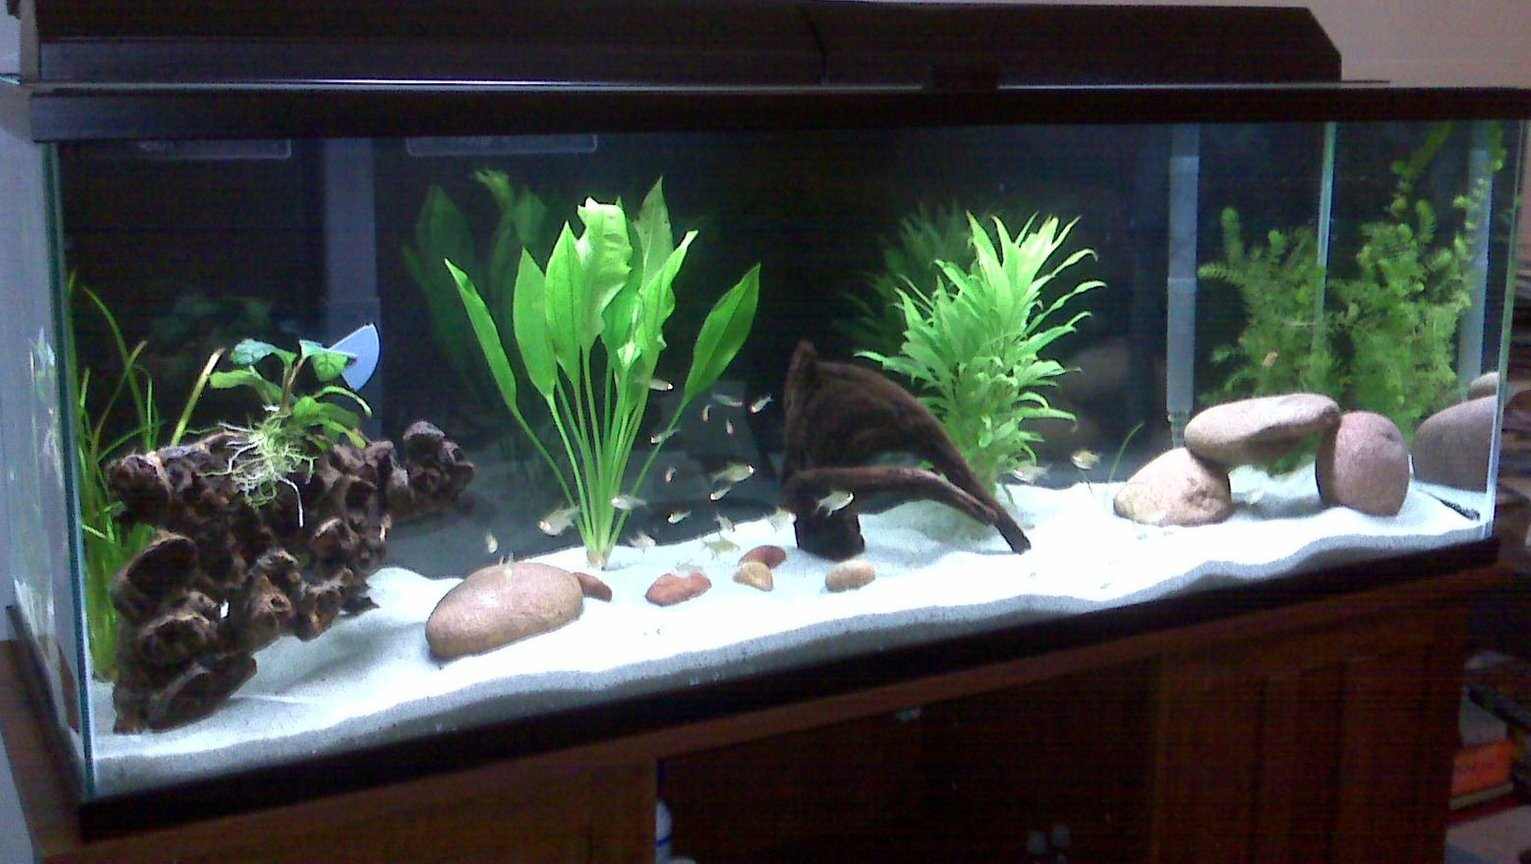 85 gallons freshwater fish tank (mostly fish and non-living decorations) - x10 baby Geophagus sp. Tapajos x15 lemon tetras x12 rummy nose tetra x1 albino bushy nose pleco 1 amazon sword some driftwood